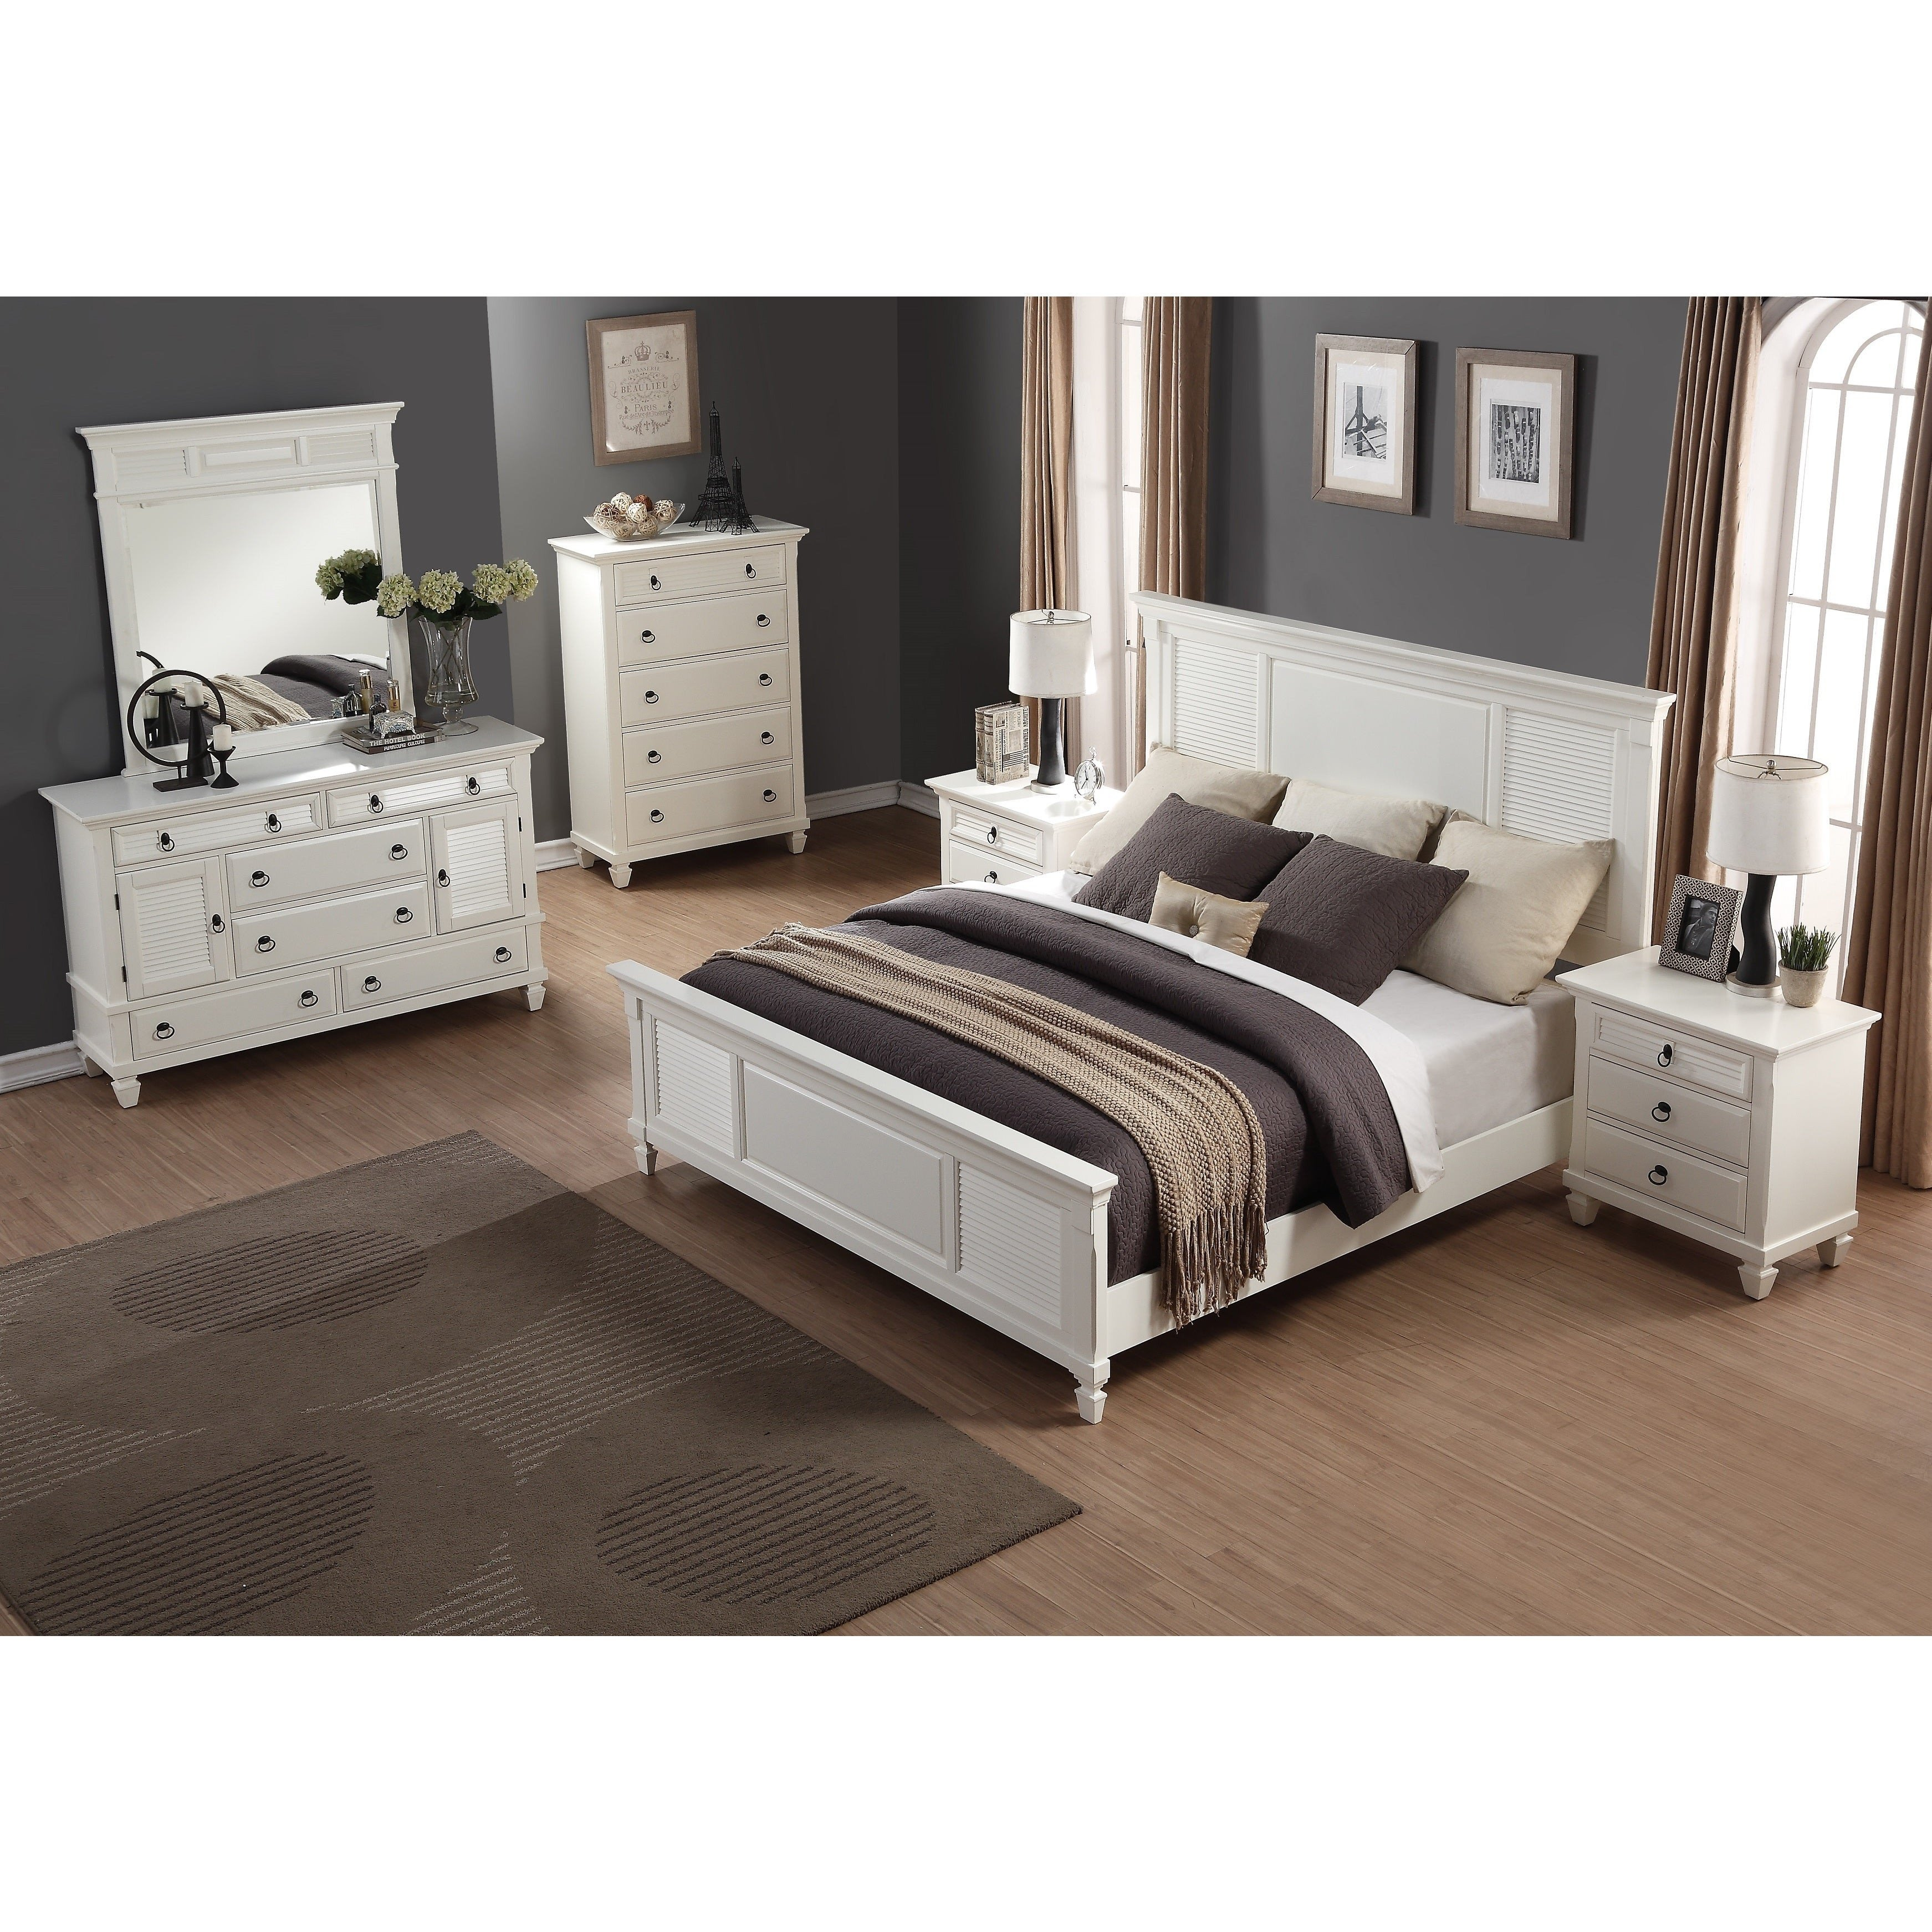 Cheap White Bedroom Furniture Set Awesome Regitina White 6 Piece Queen Size Bedroom Furniture Set